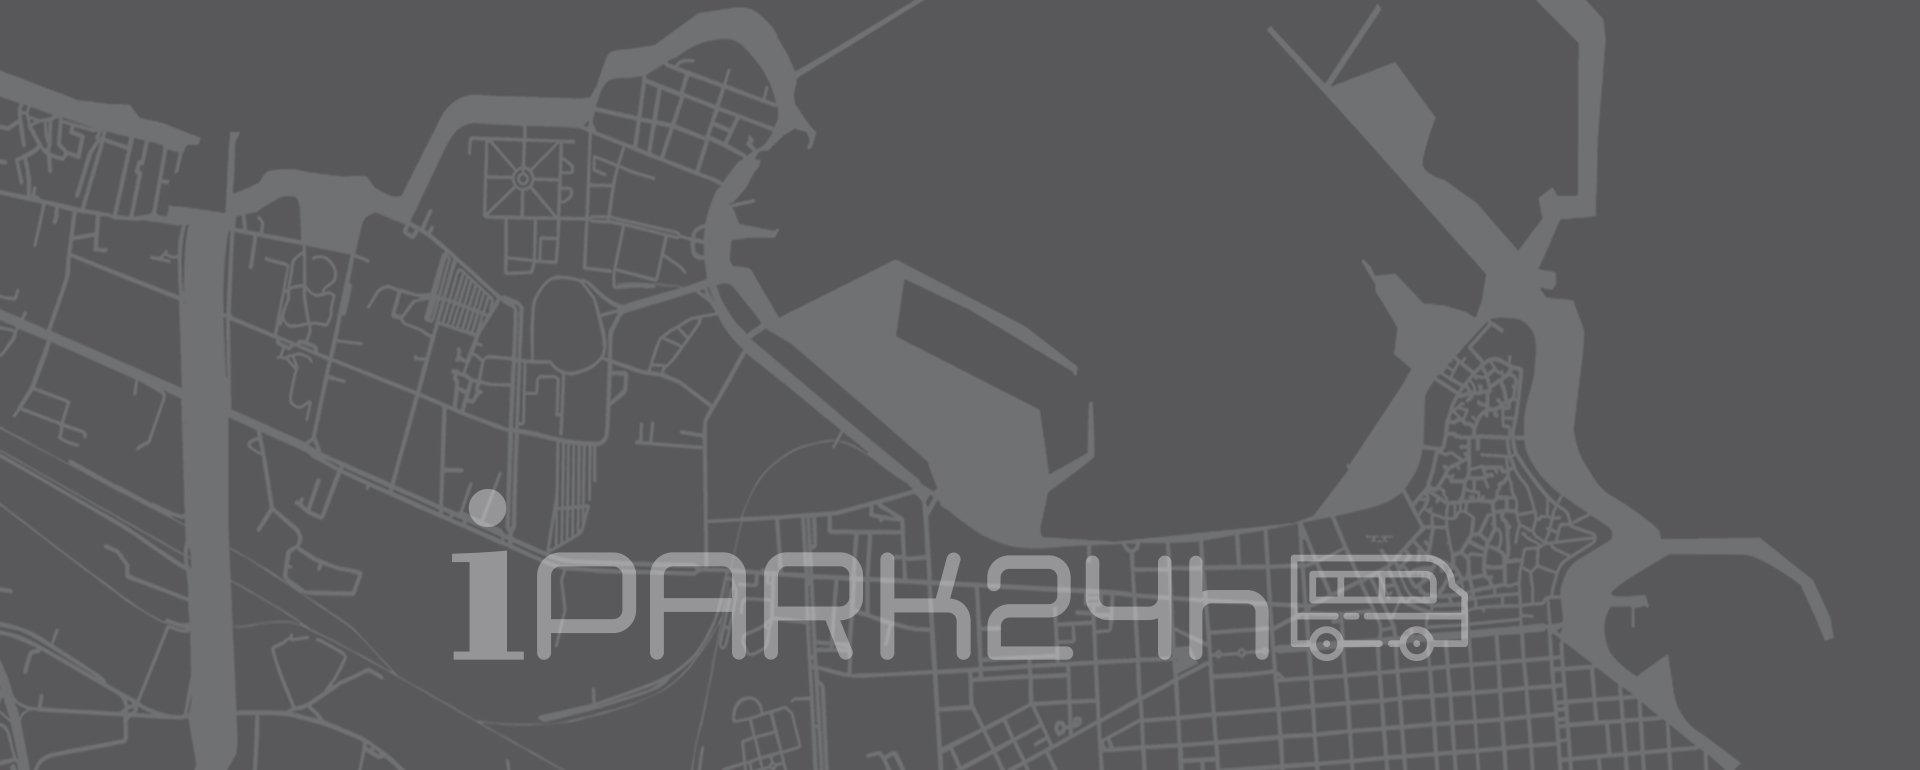 iPark24h by